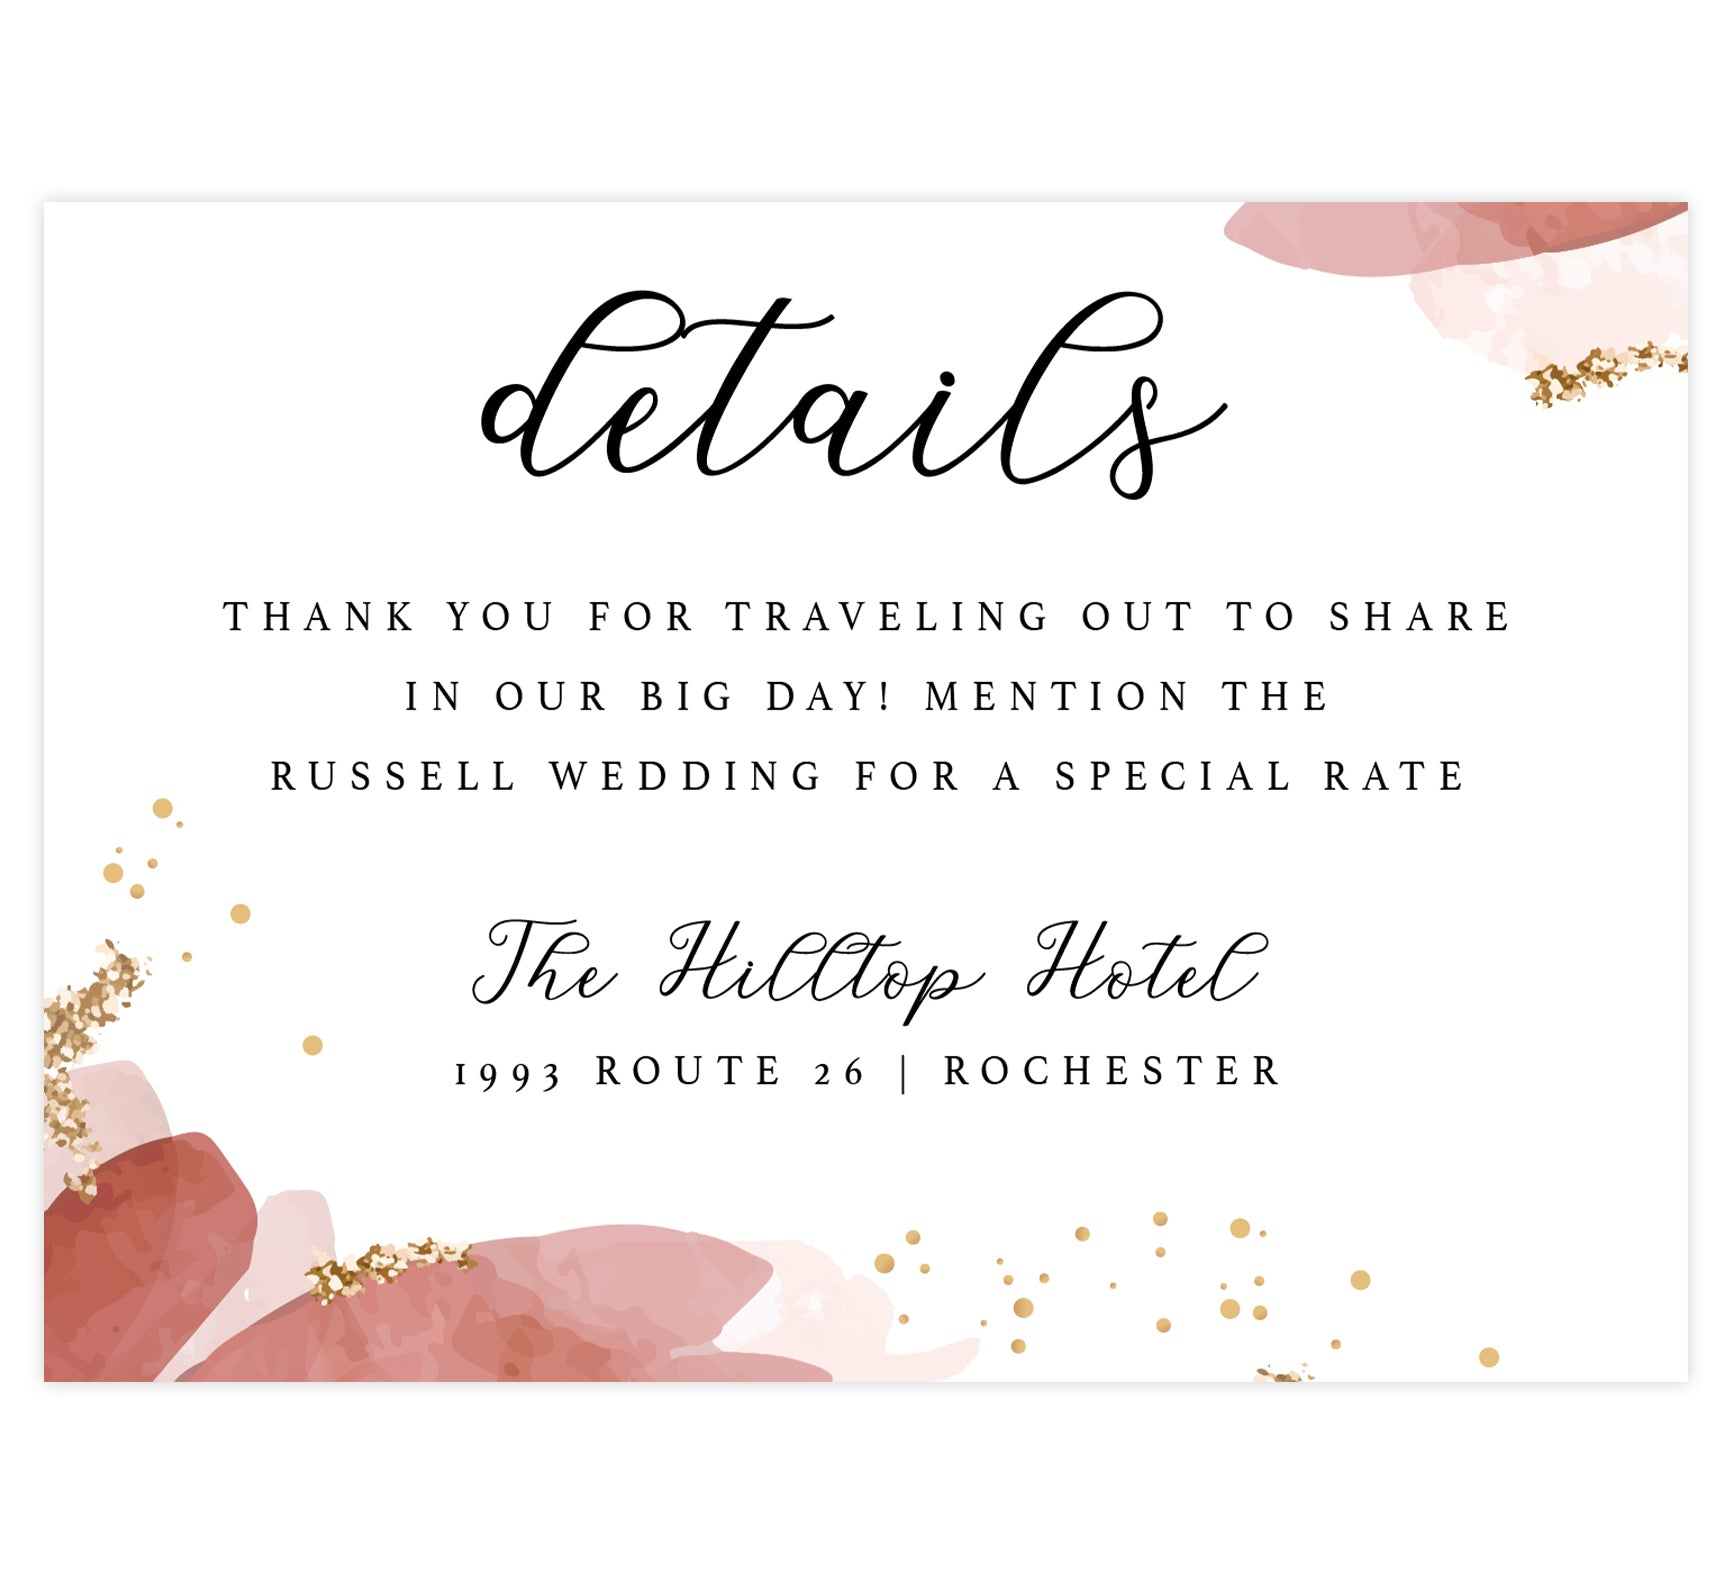 Enchanting Watercolor wedding accommodations/detail card; white background with pink watercolor on the edges, gold dots and glitter with black text